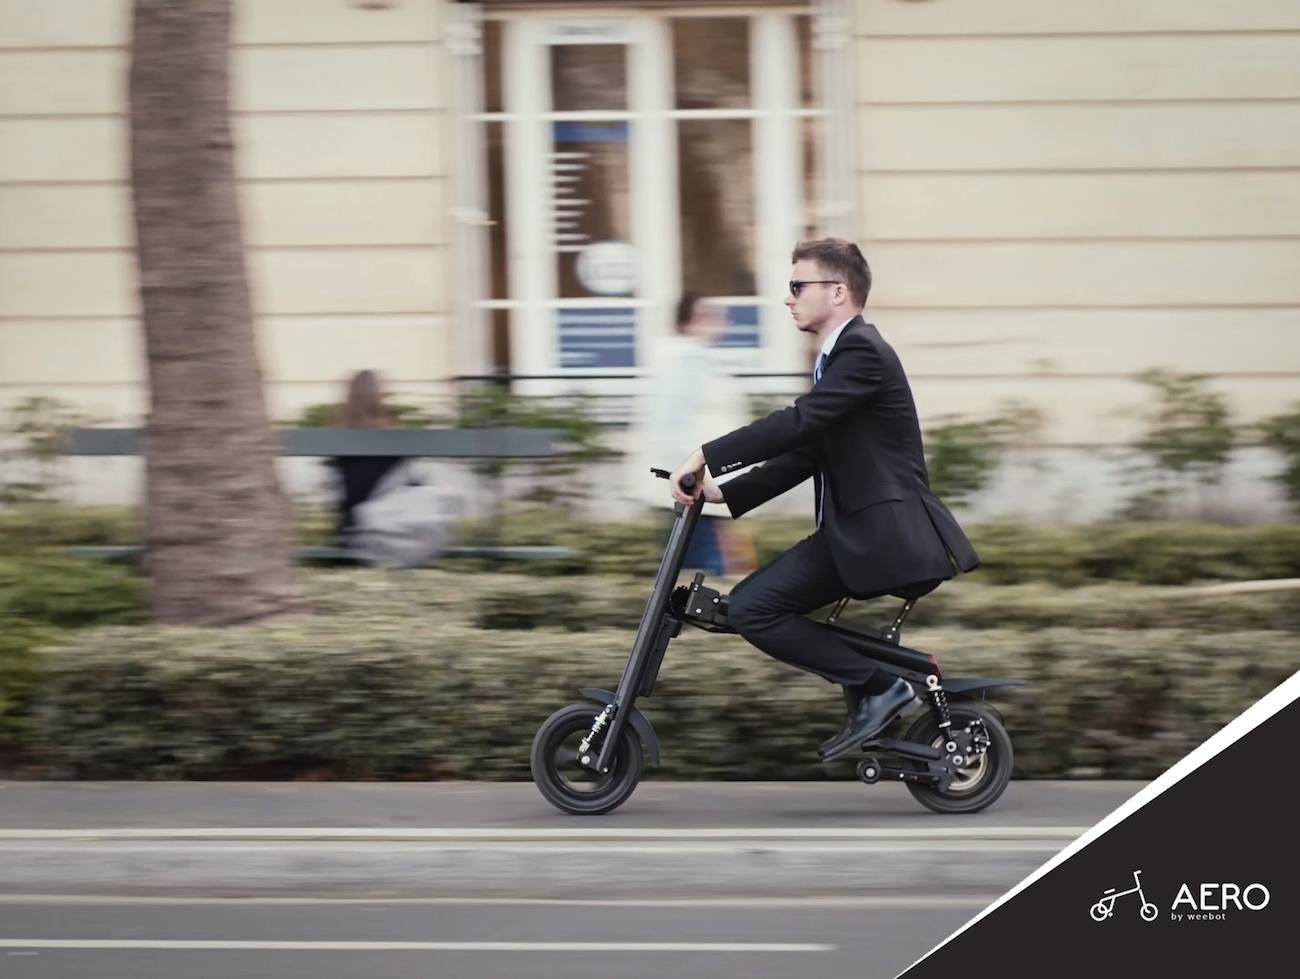 Aero Foldable Smart E-Bike